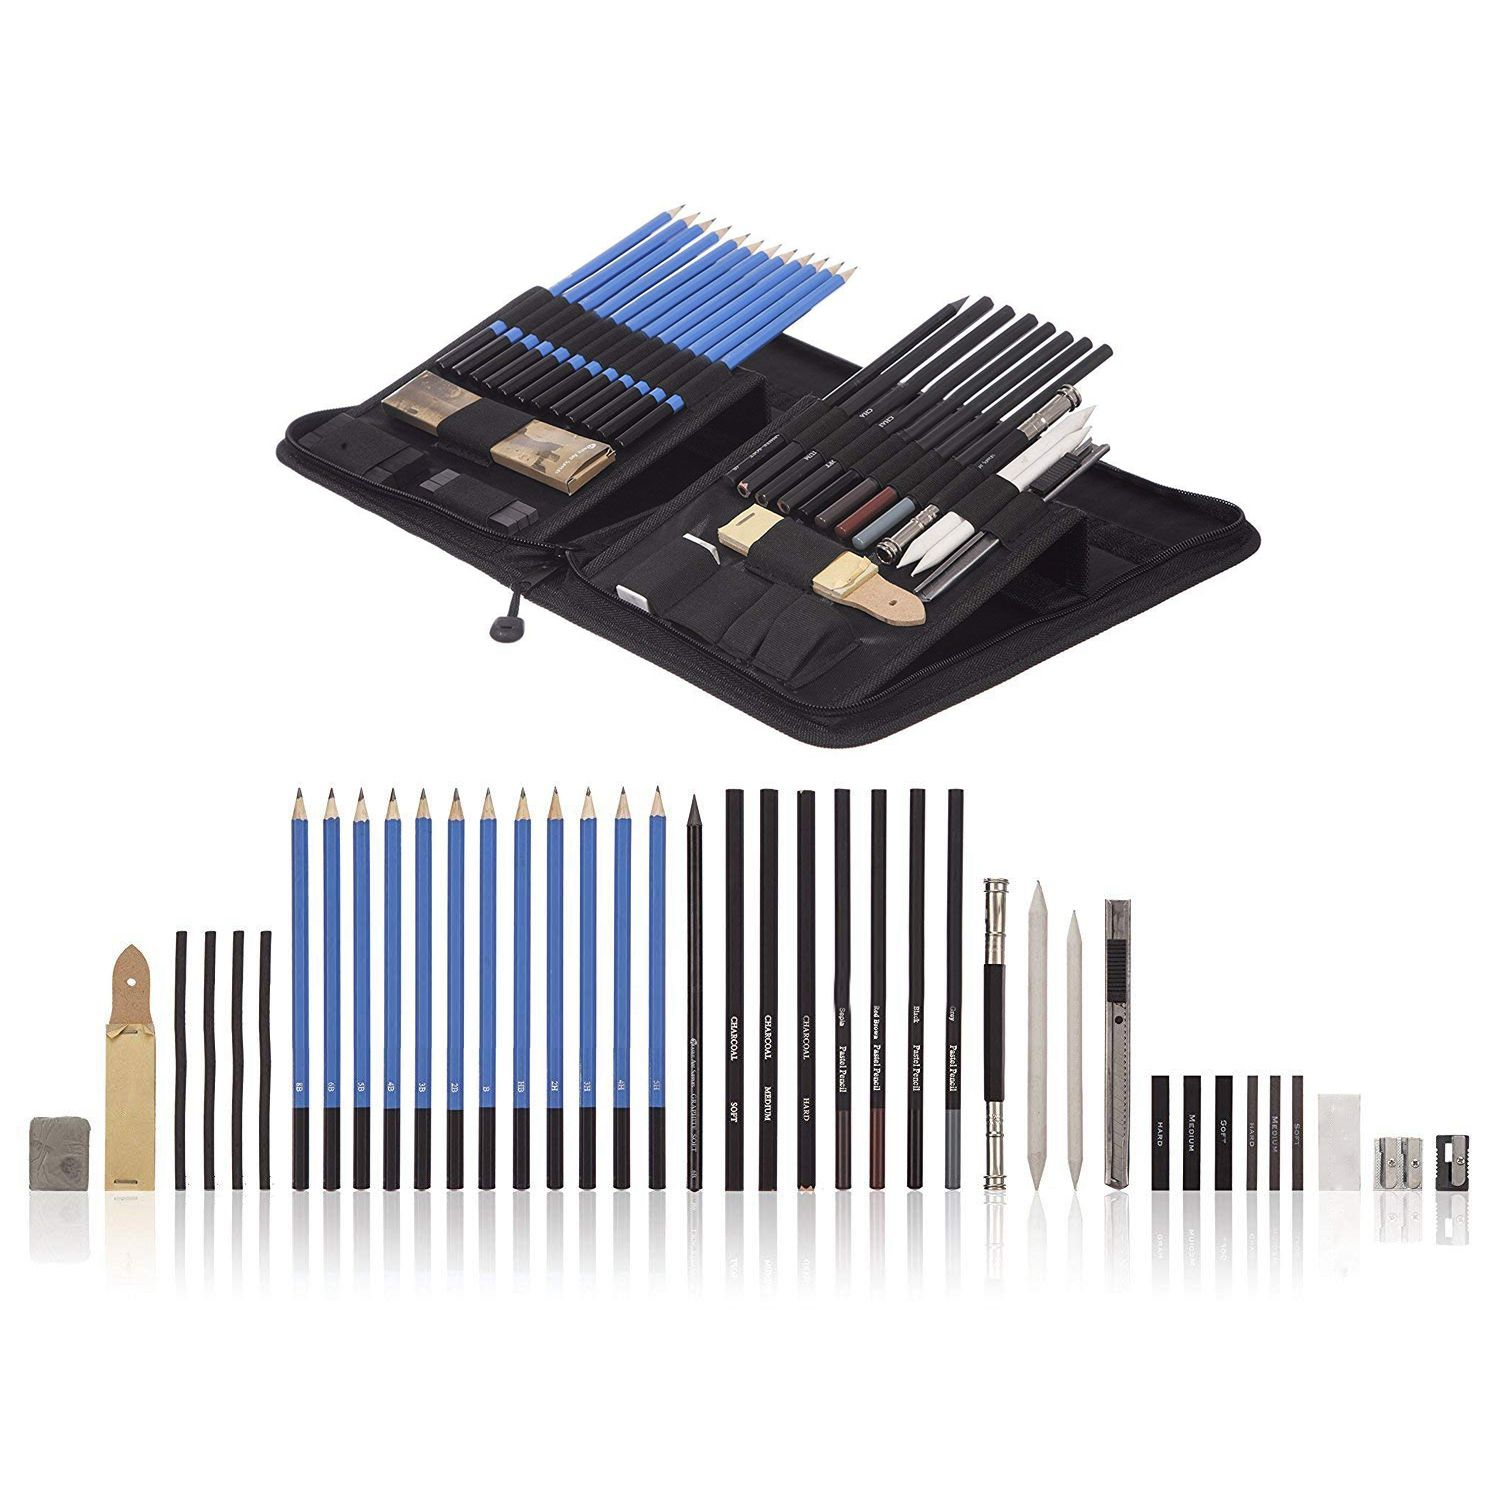 40 Piece Drawing Pencils And Sketch Set In Pop Up Zipper Case Pastel And Charcoal Pencils And Accessories Luxuriant In Design Includes Graphite